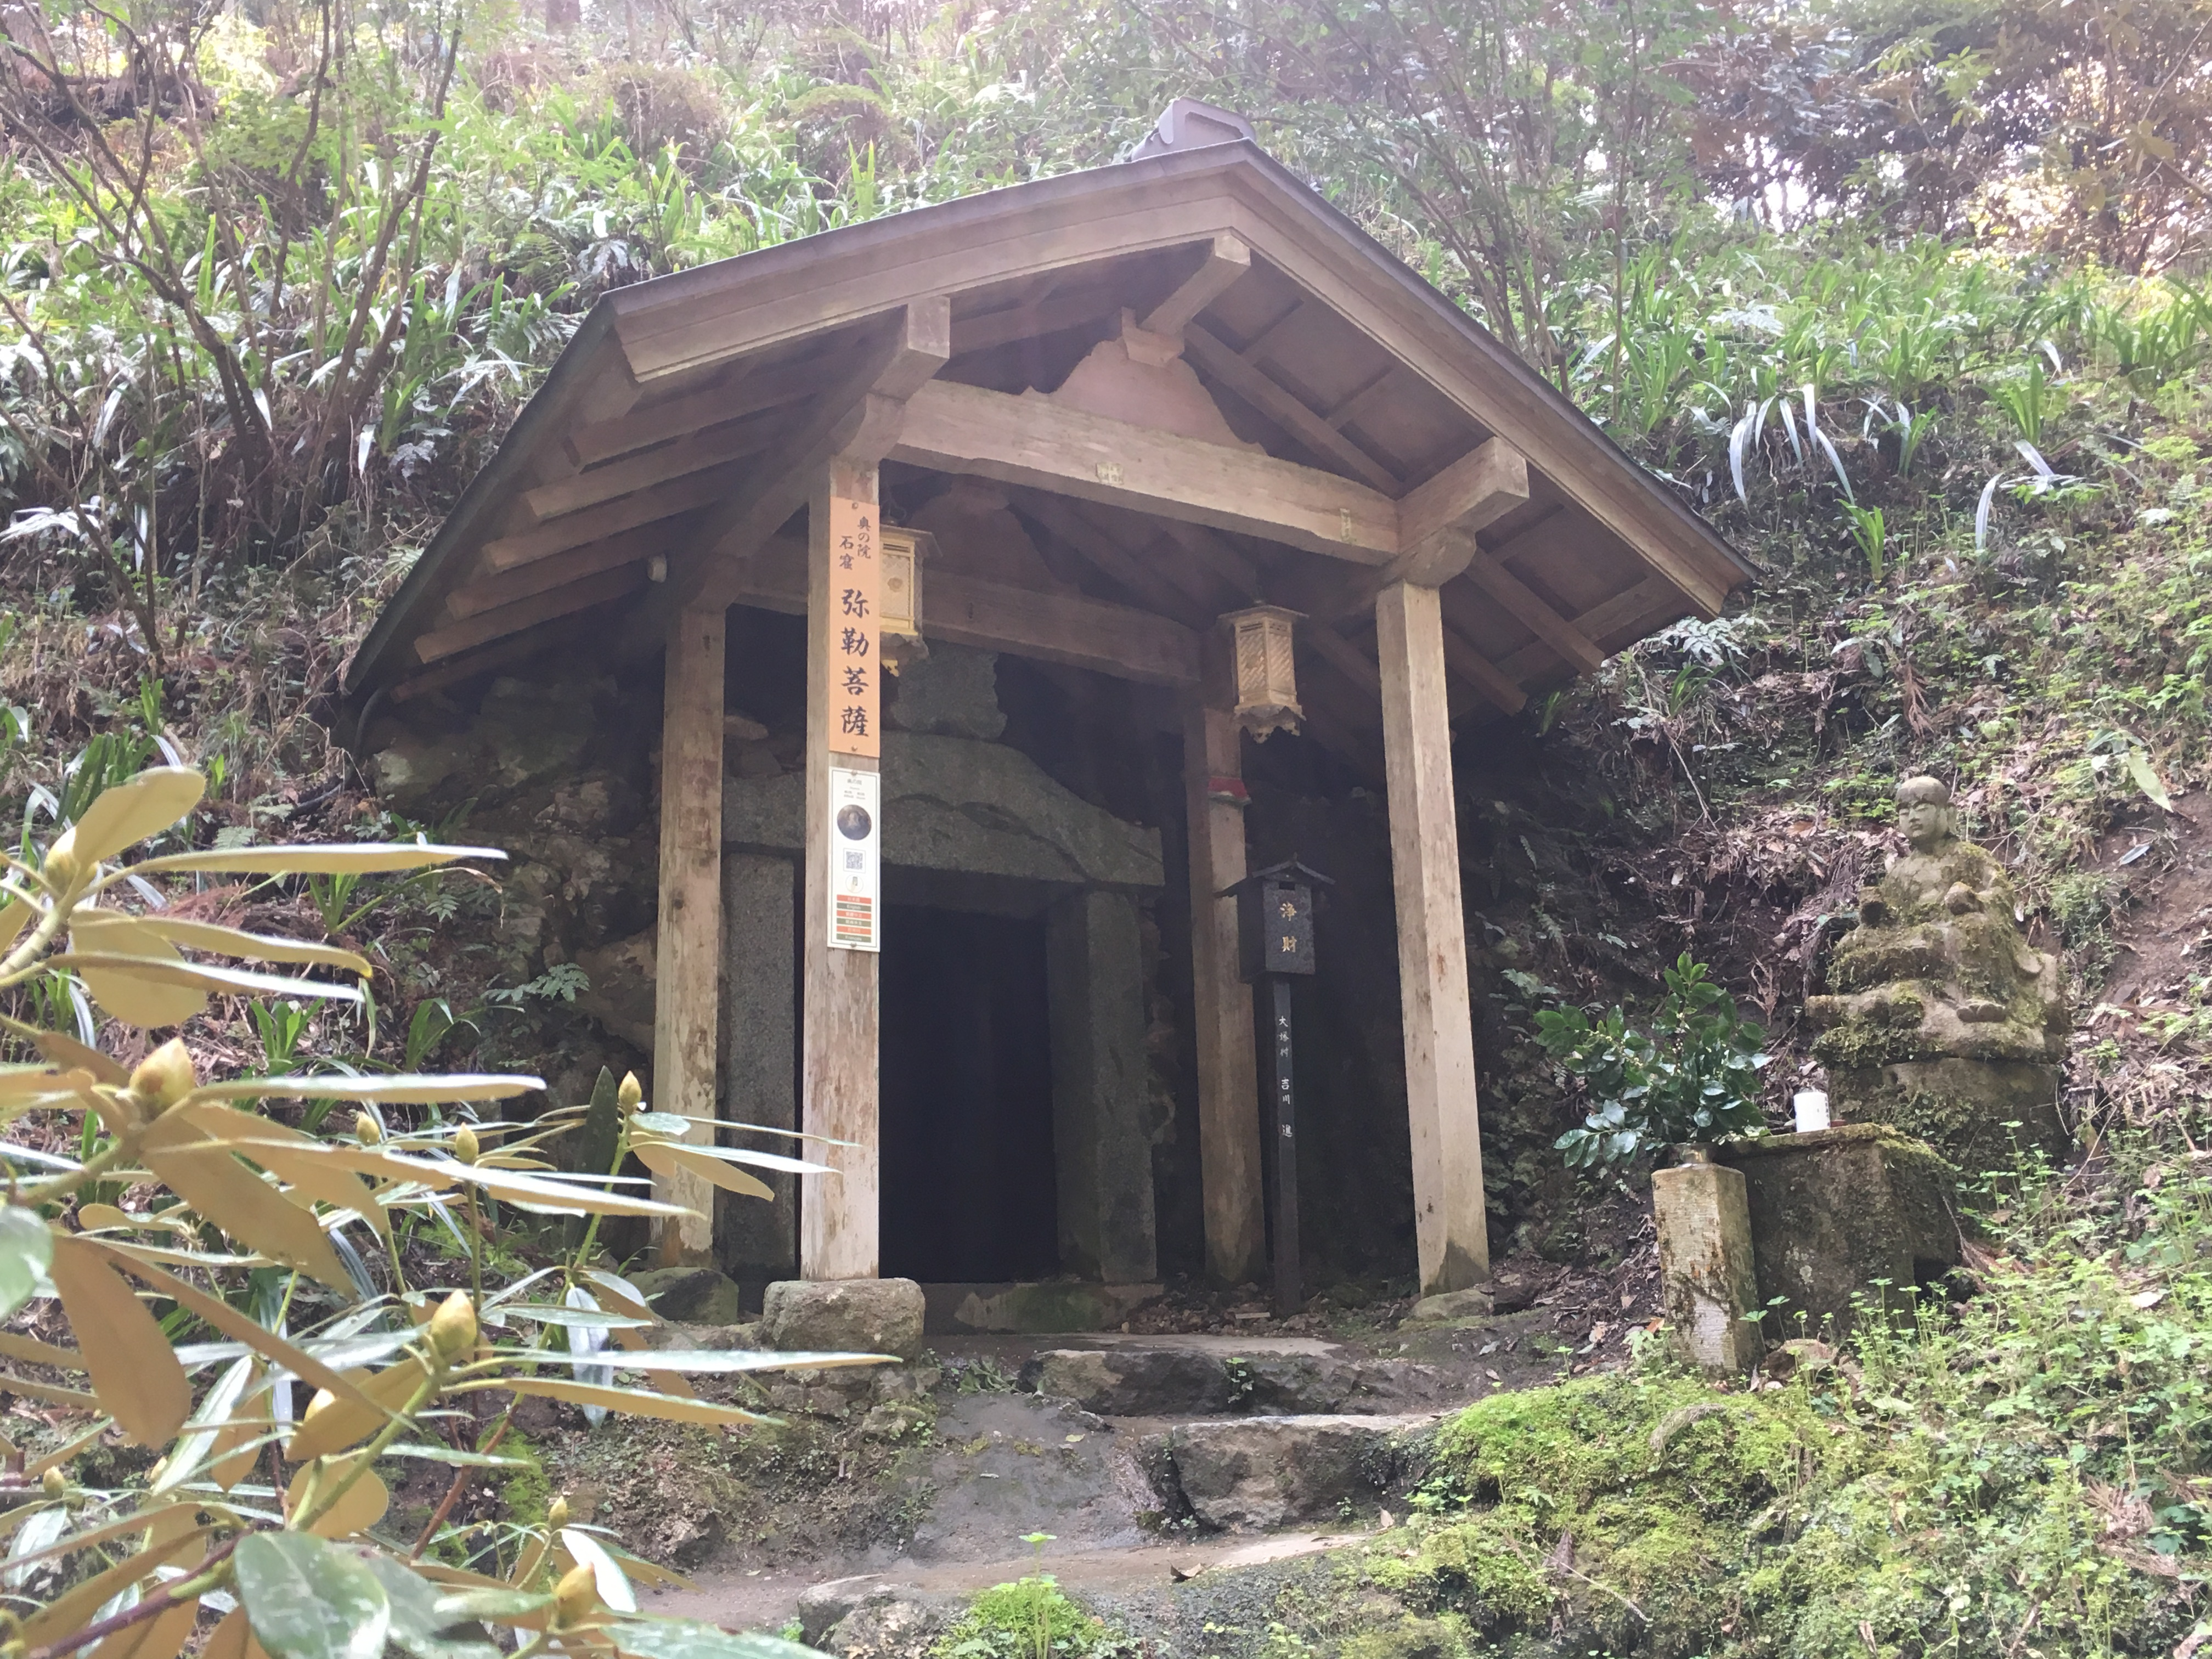 entrance to okunoin a small temple in a hillside